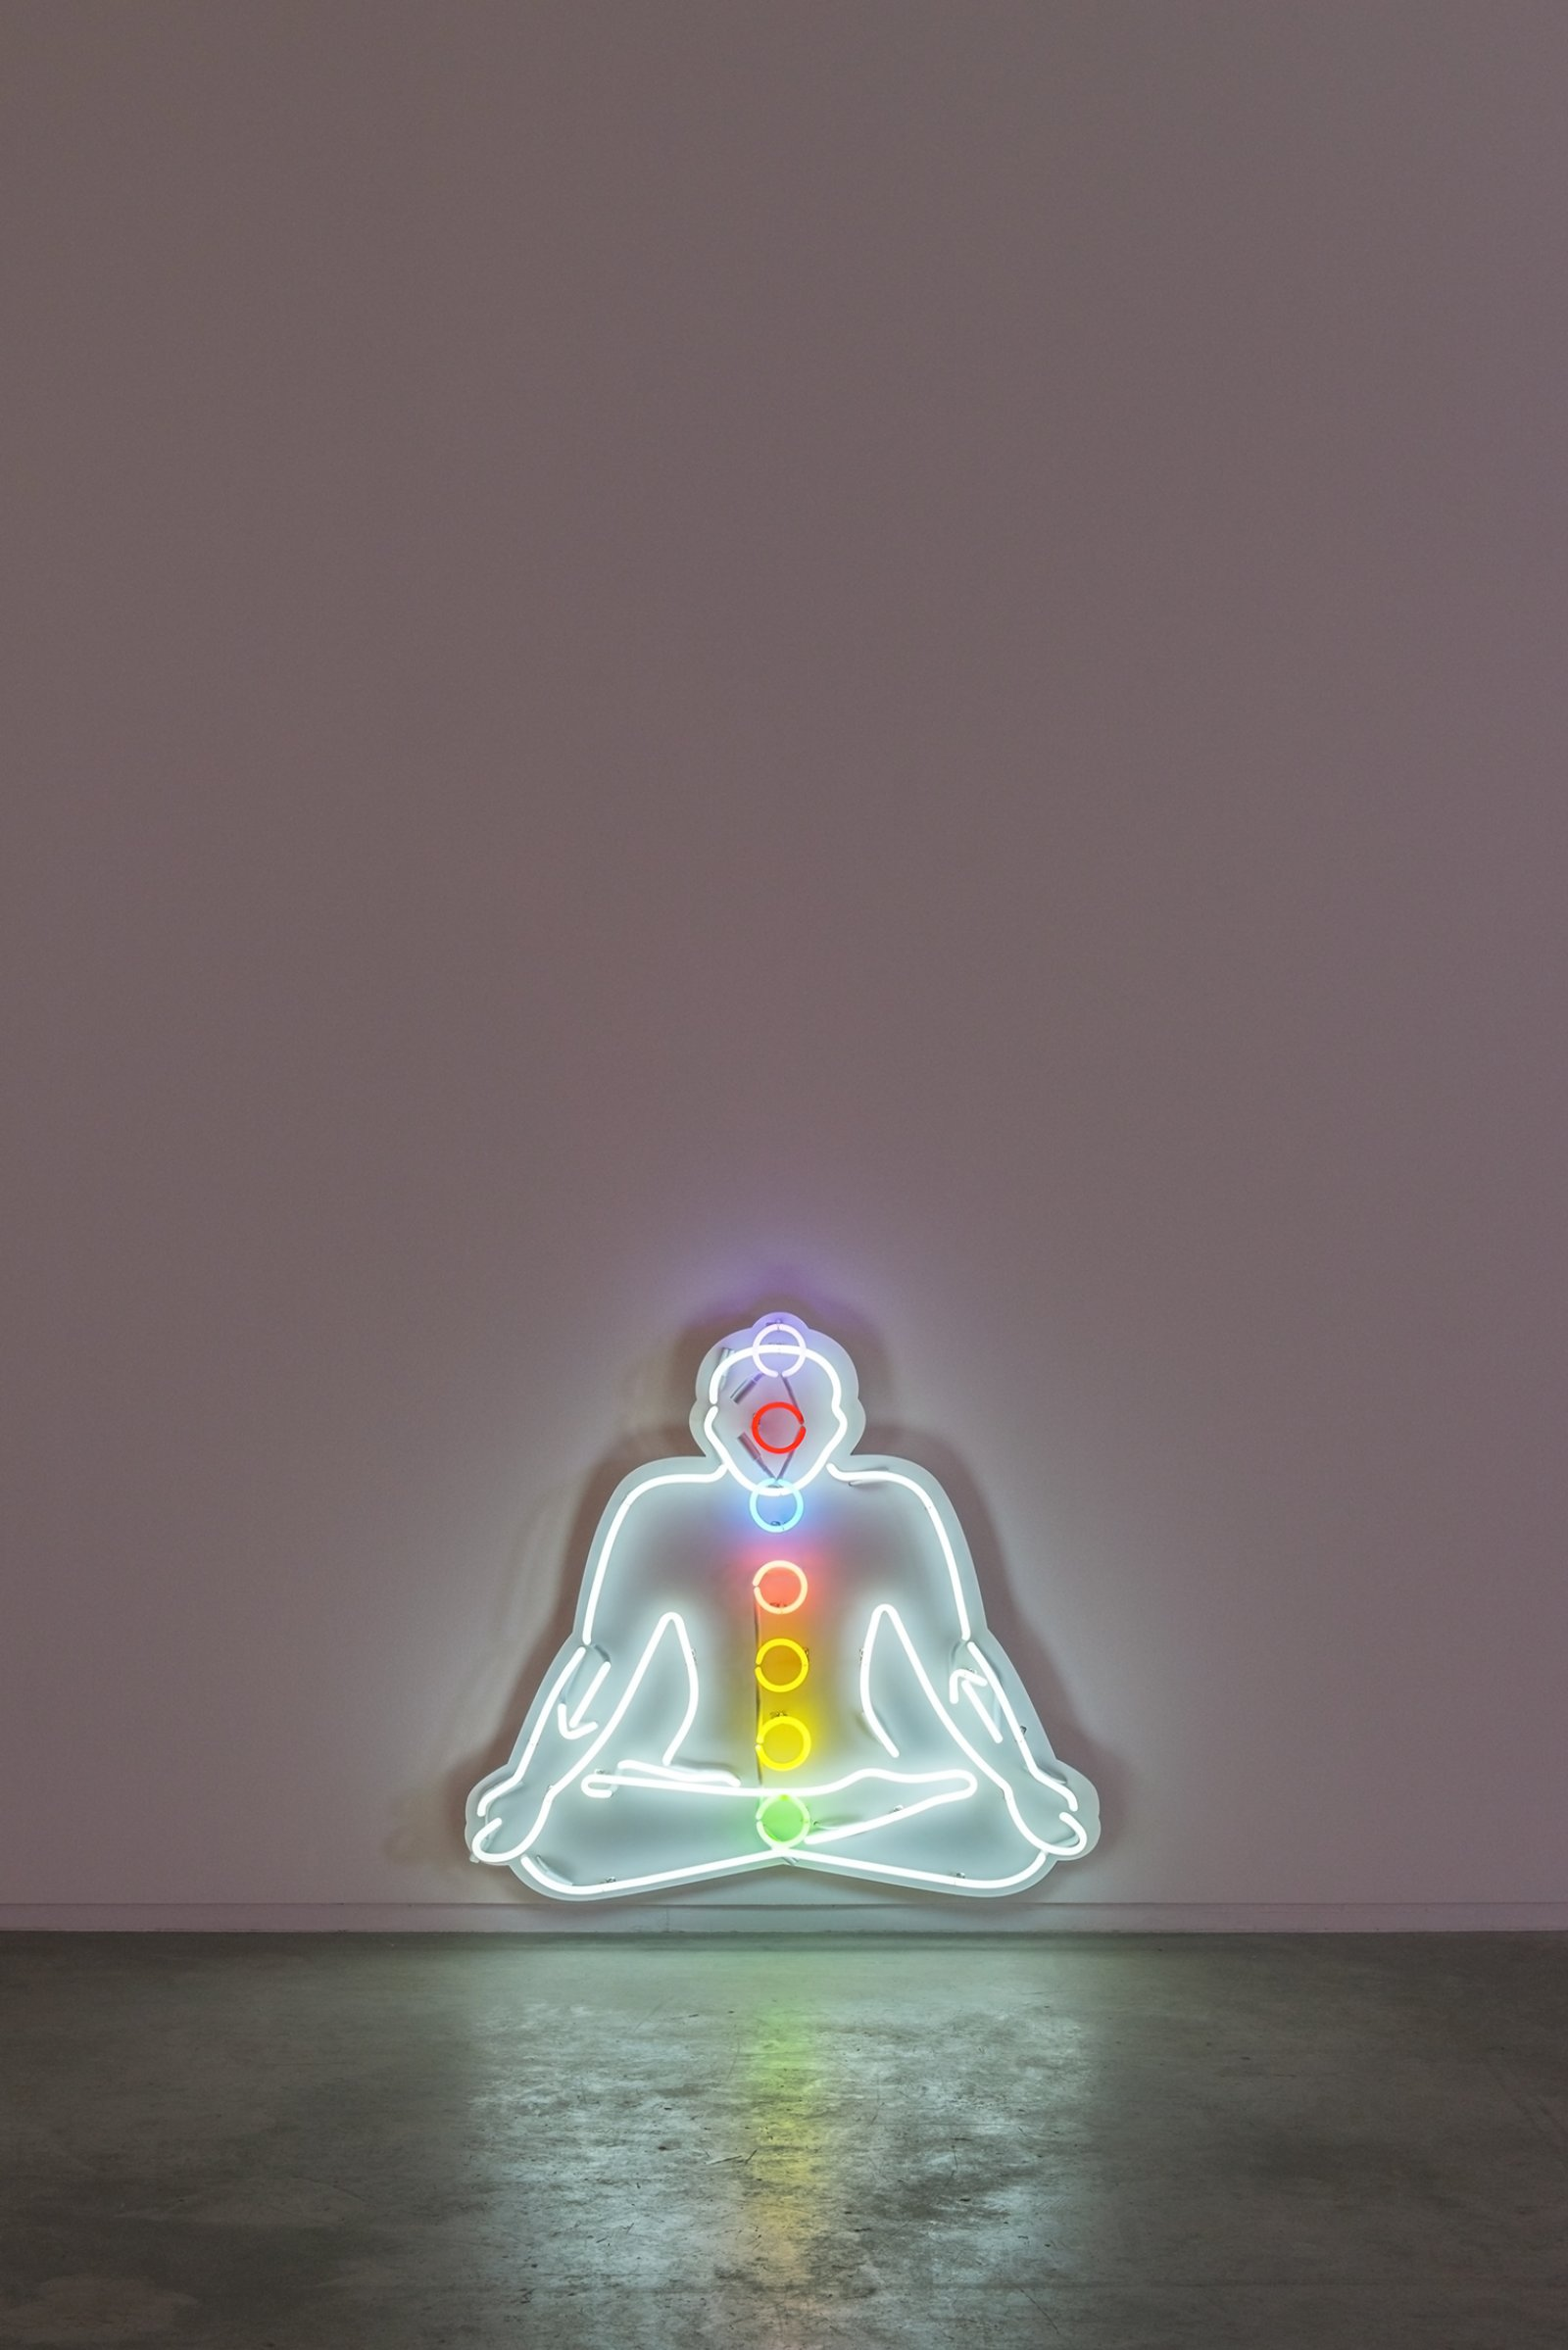 Myfanwy MacLeod, Seated Figure, 2015, neon, 44 x 48 x 5 in. (112 x 122 x 13 cm) by Myfanwy MacLeod